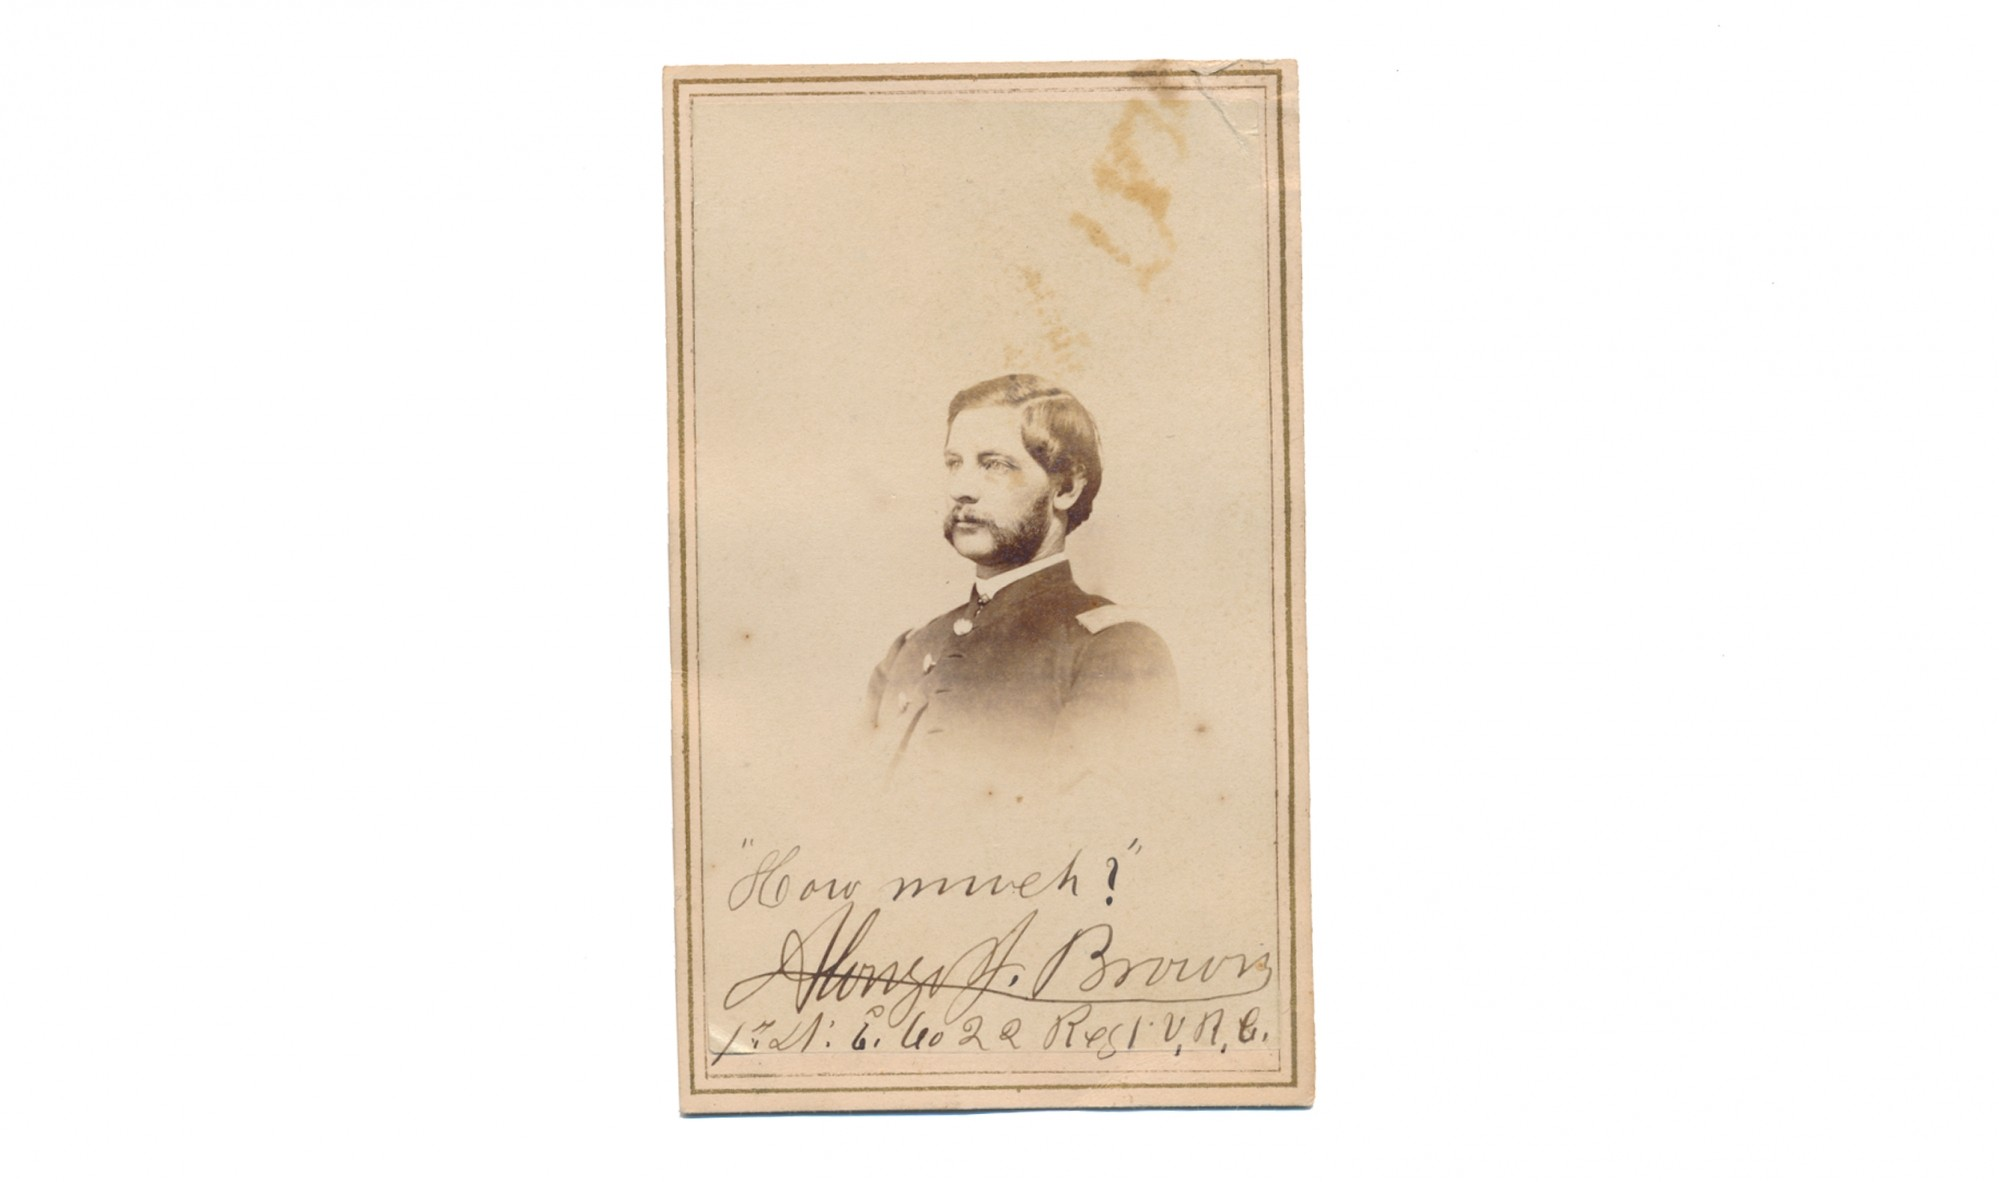 CDV OF ALONZO J. BROWN, 1ST KANSAS INFANTRY